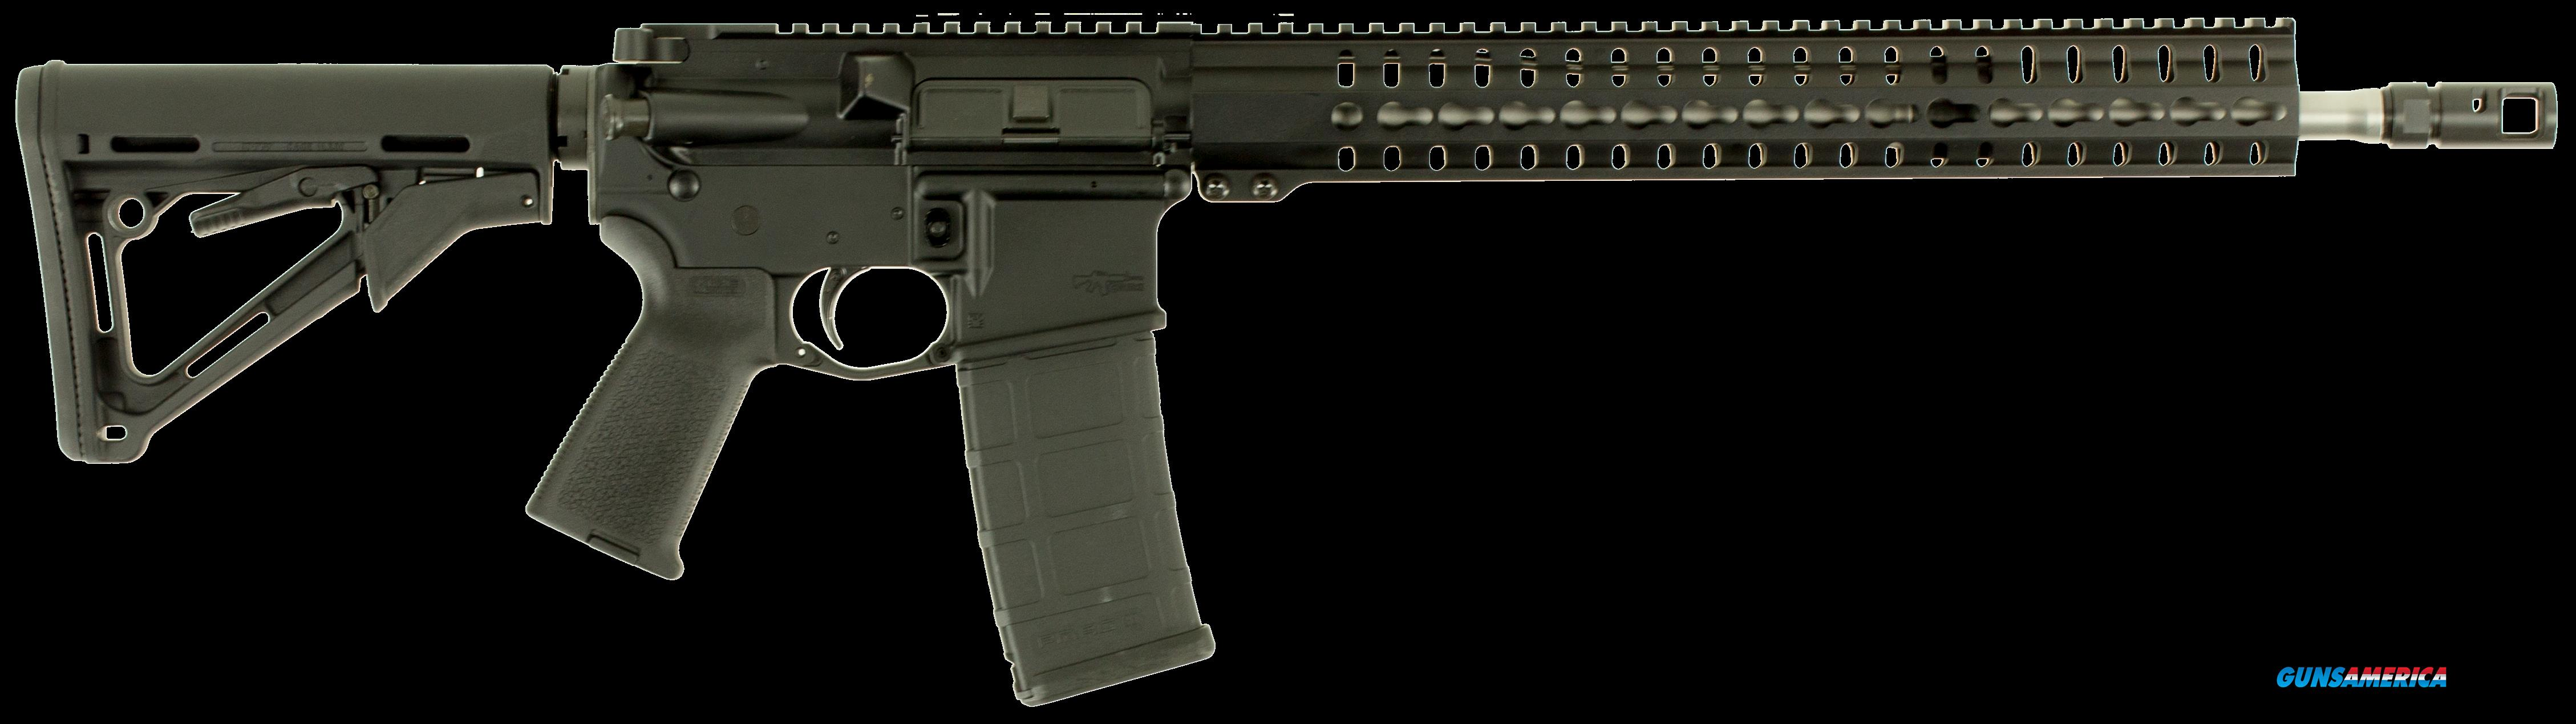 "CMMG 55A591A Mk4 RCE Semi-Automatic 223 Remington/5.56 NATO 16.1"" 30+1 6-Position Black Stk  Guns > Rifles > C Misc Rifles"